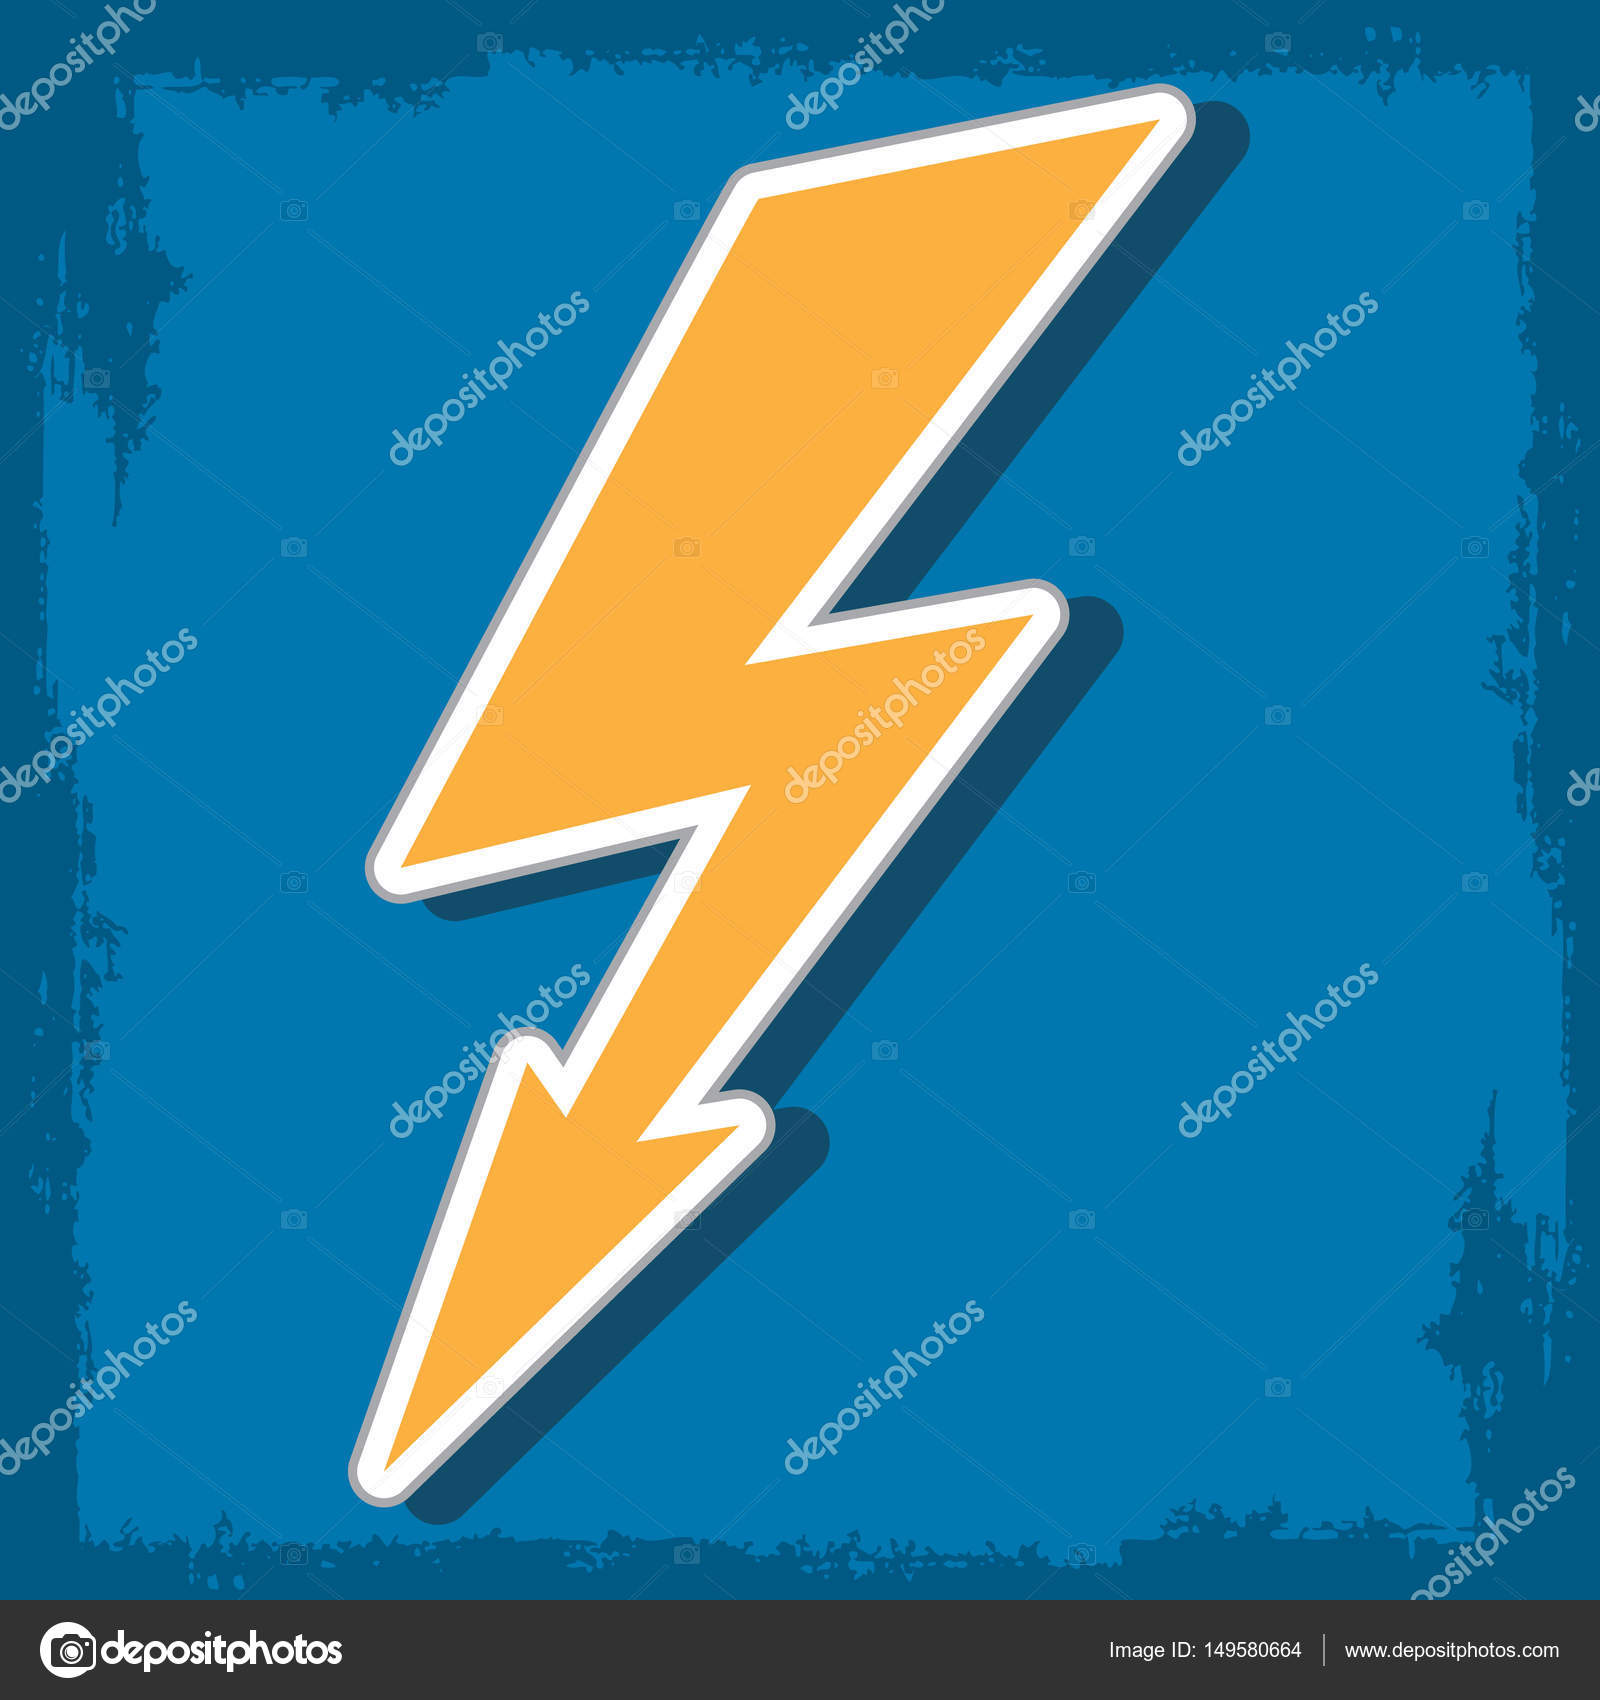 Lightning The Electric Charge Of The Logo Stock Vector